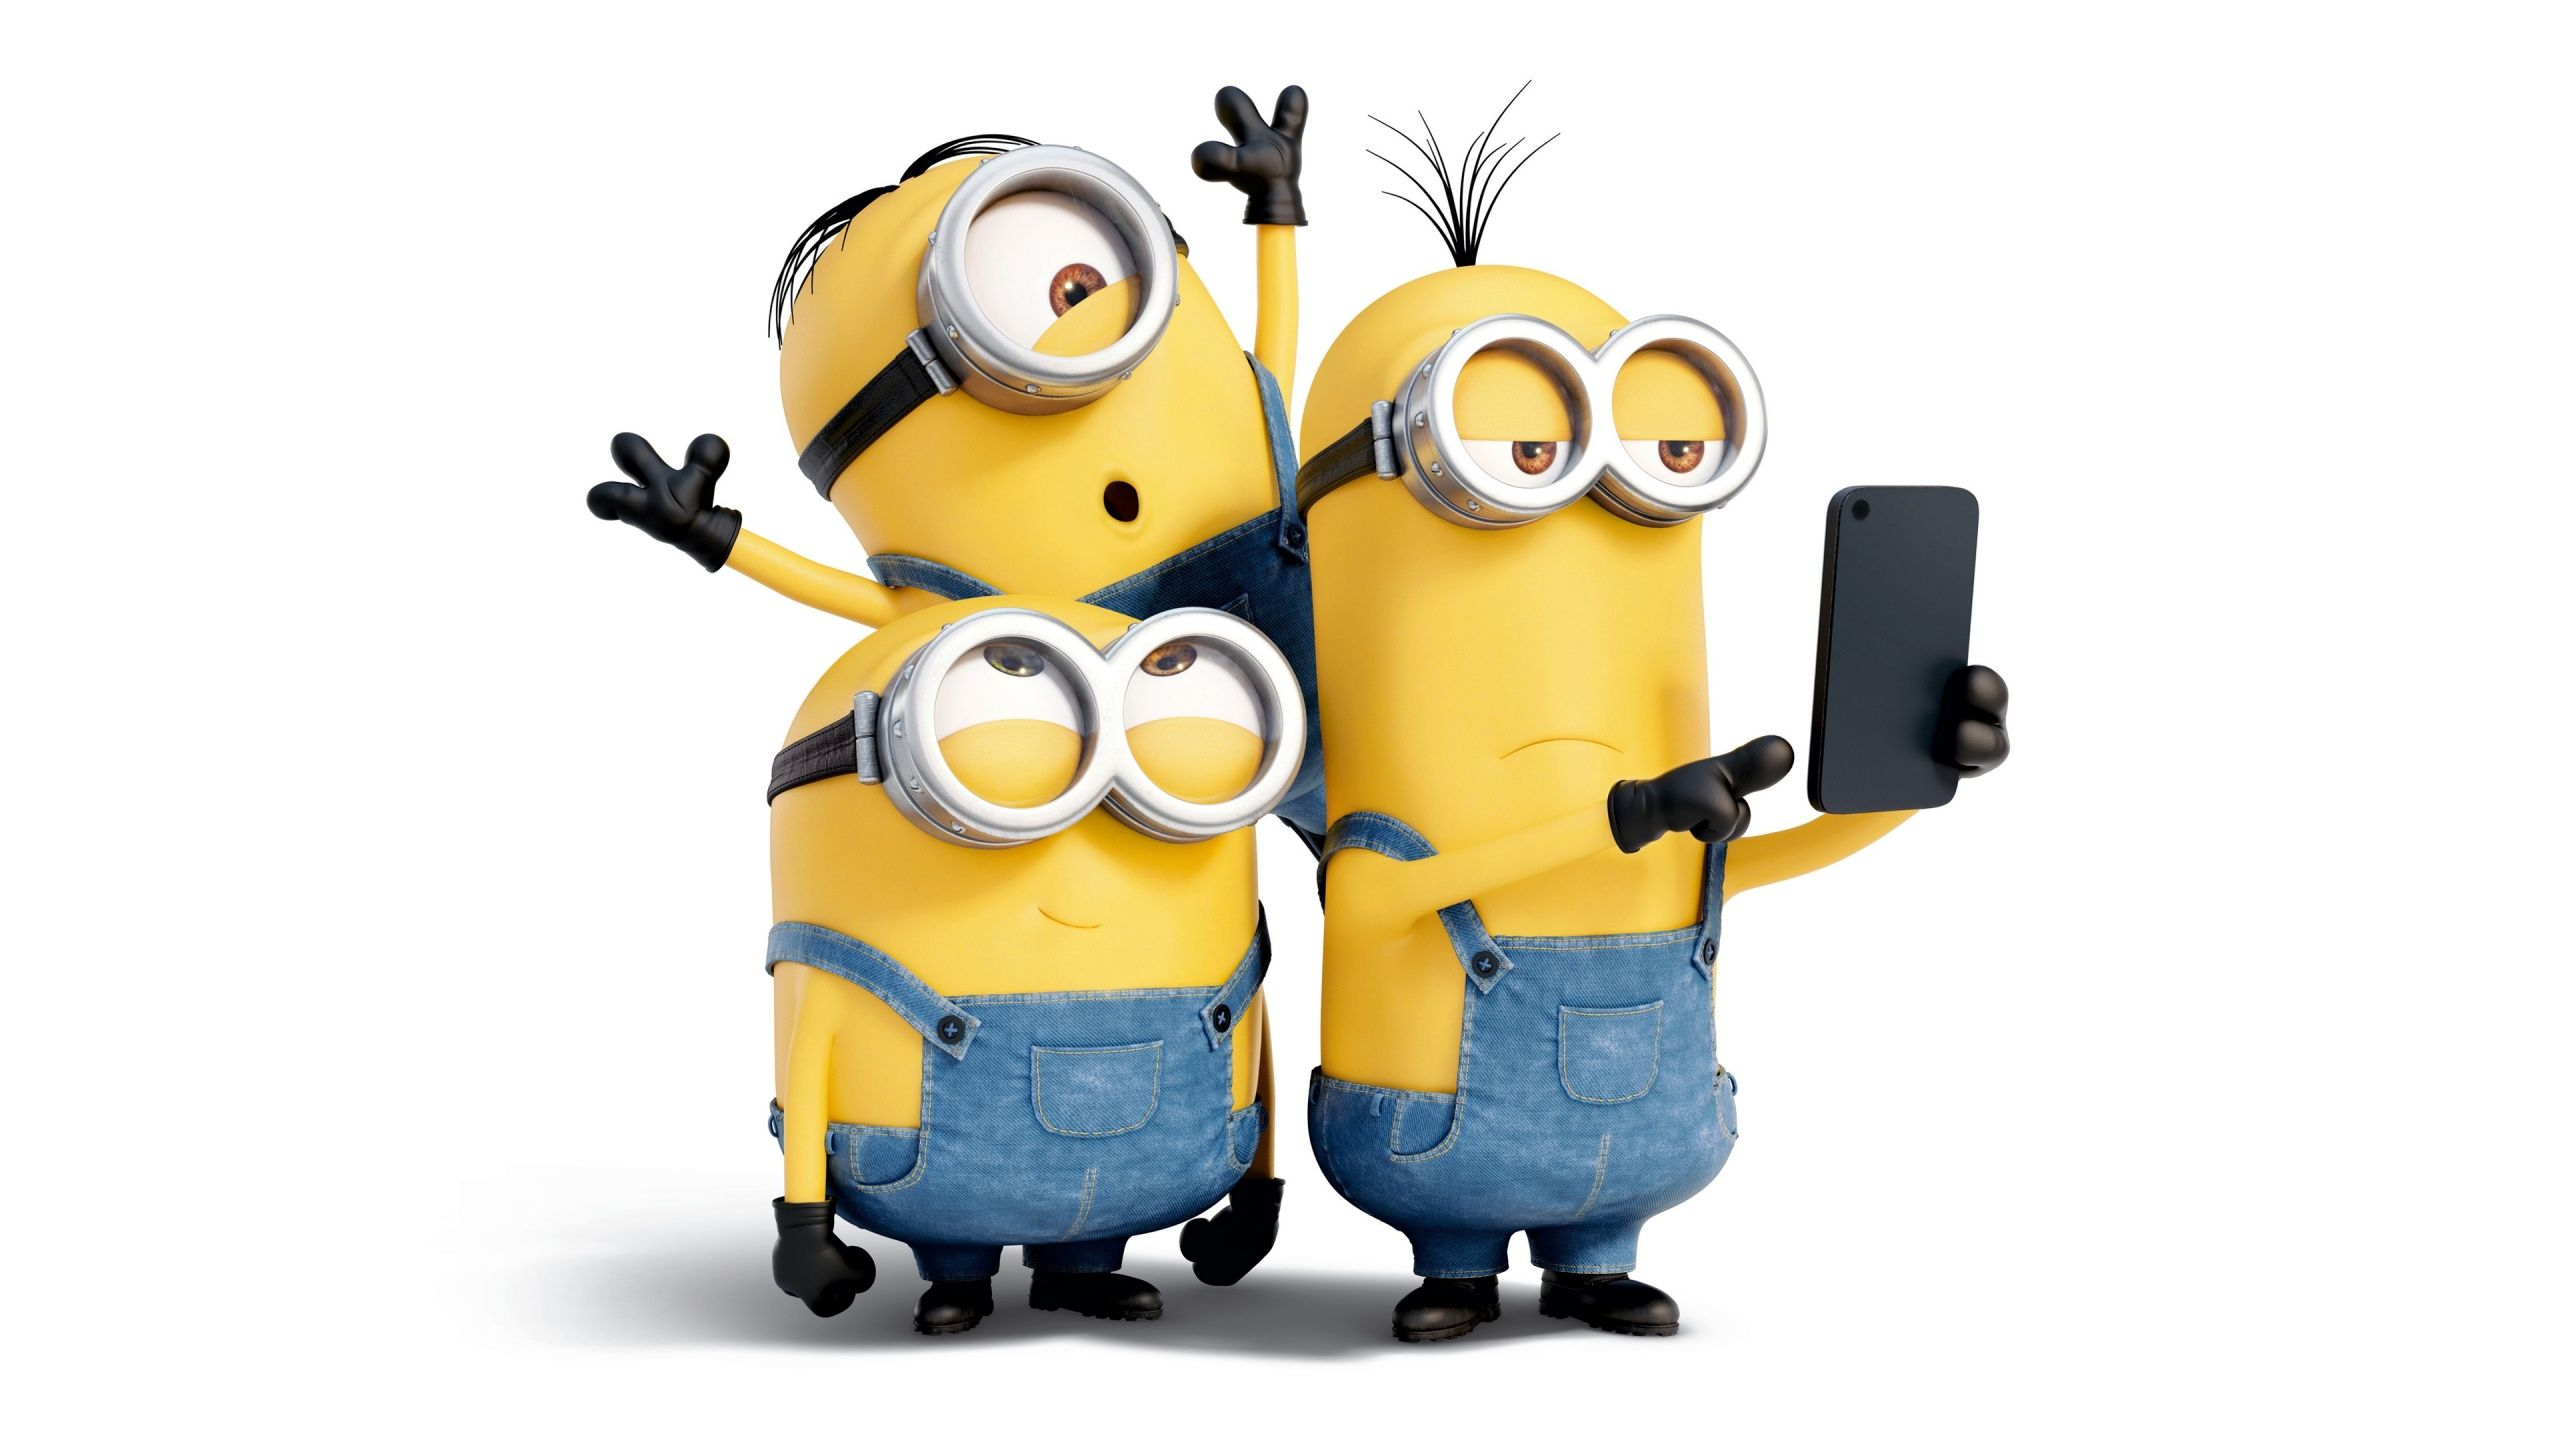 Cute Minion HD Wallpaper Download Free